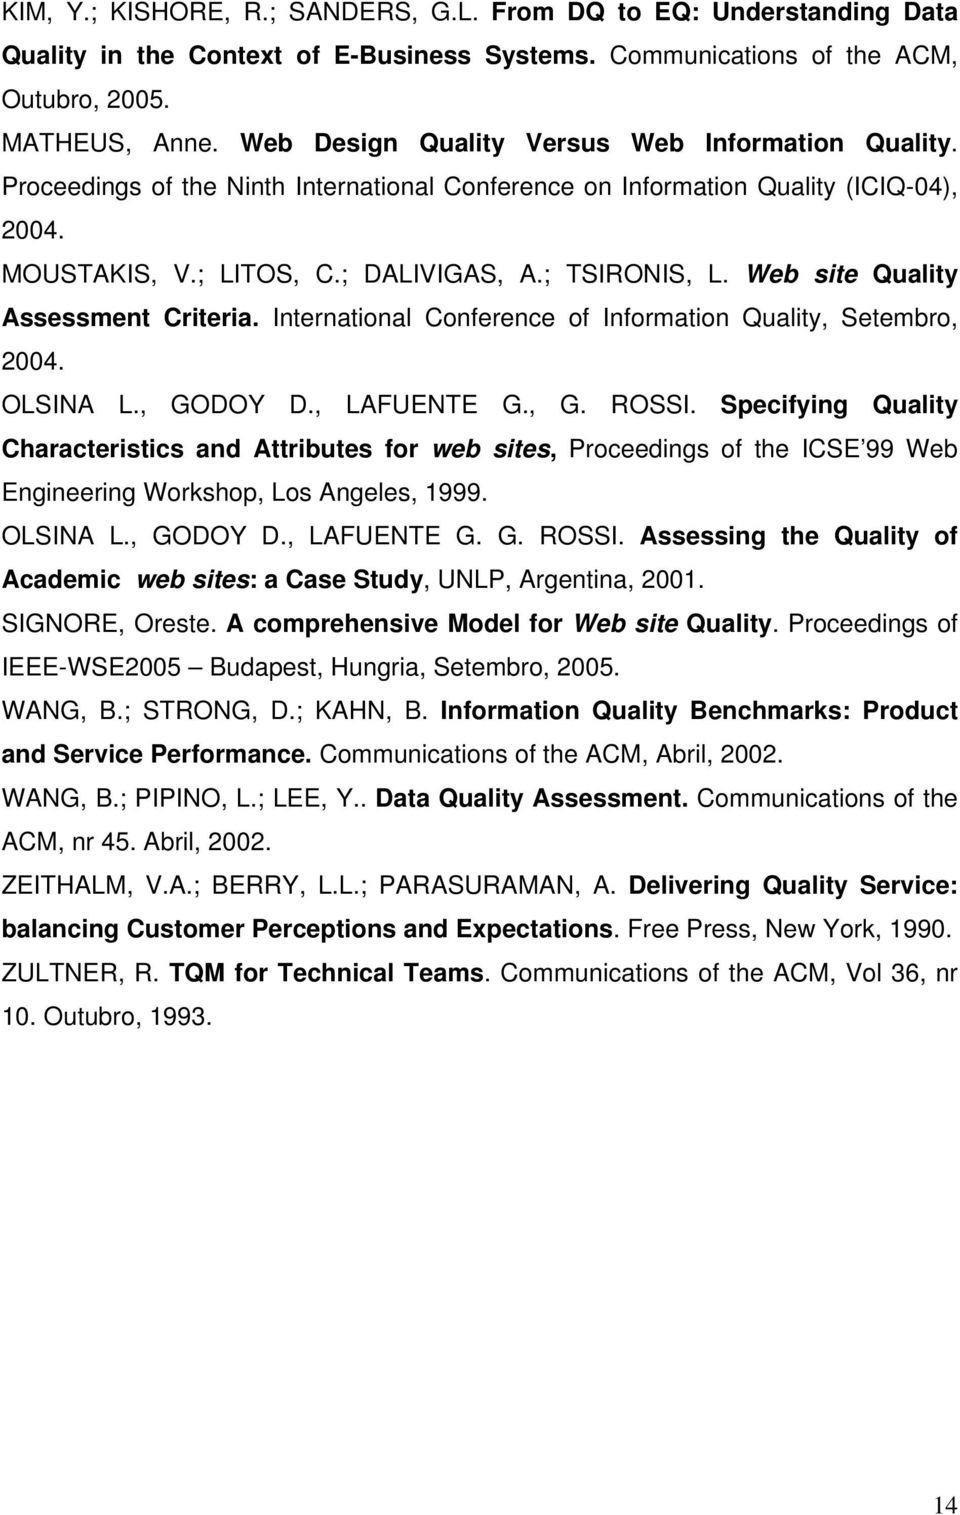 Web site Quality Assessment Criteria. International Conference of Information Quality, Setembro, 2004. OLSINA L., GODOY D., LAFUENTE G., G. ROSSI.